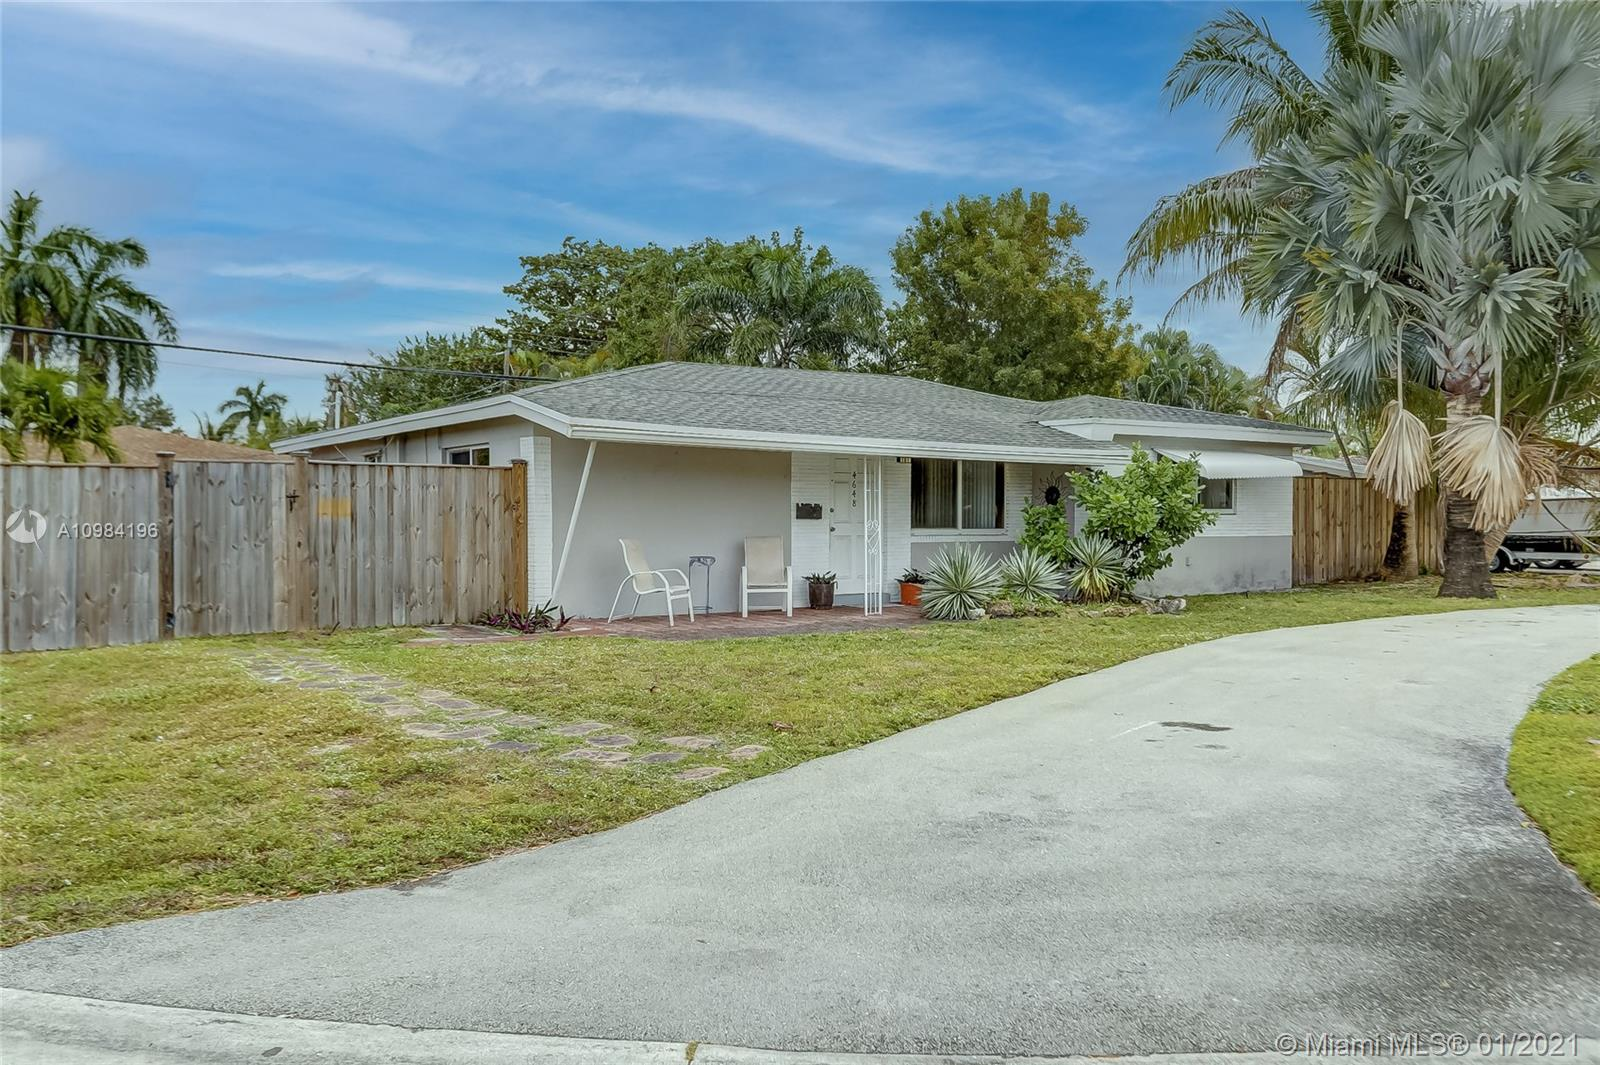 Don't Miss this desirable single family corner lot with NO HOA in North Andrews Gardens. Bring your large family to this 4 bedroom/ 3 bath (garage converted with closet), great open space, huge fenced yard with room for pets and a pool. Great location South of Commercial and East of Andrews, near I-95 and just a few miles to Lauderdale By the Sea. A/C 2020, impact windows except 2 windows in back of house, roof 2013, inside laundry. Tenant occupied, Appt necessary.